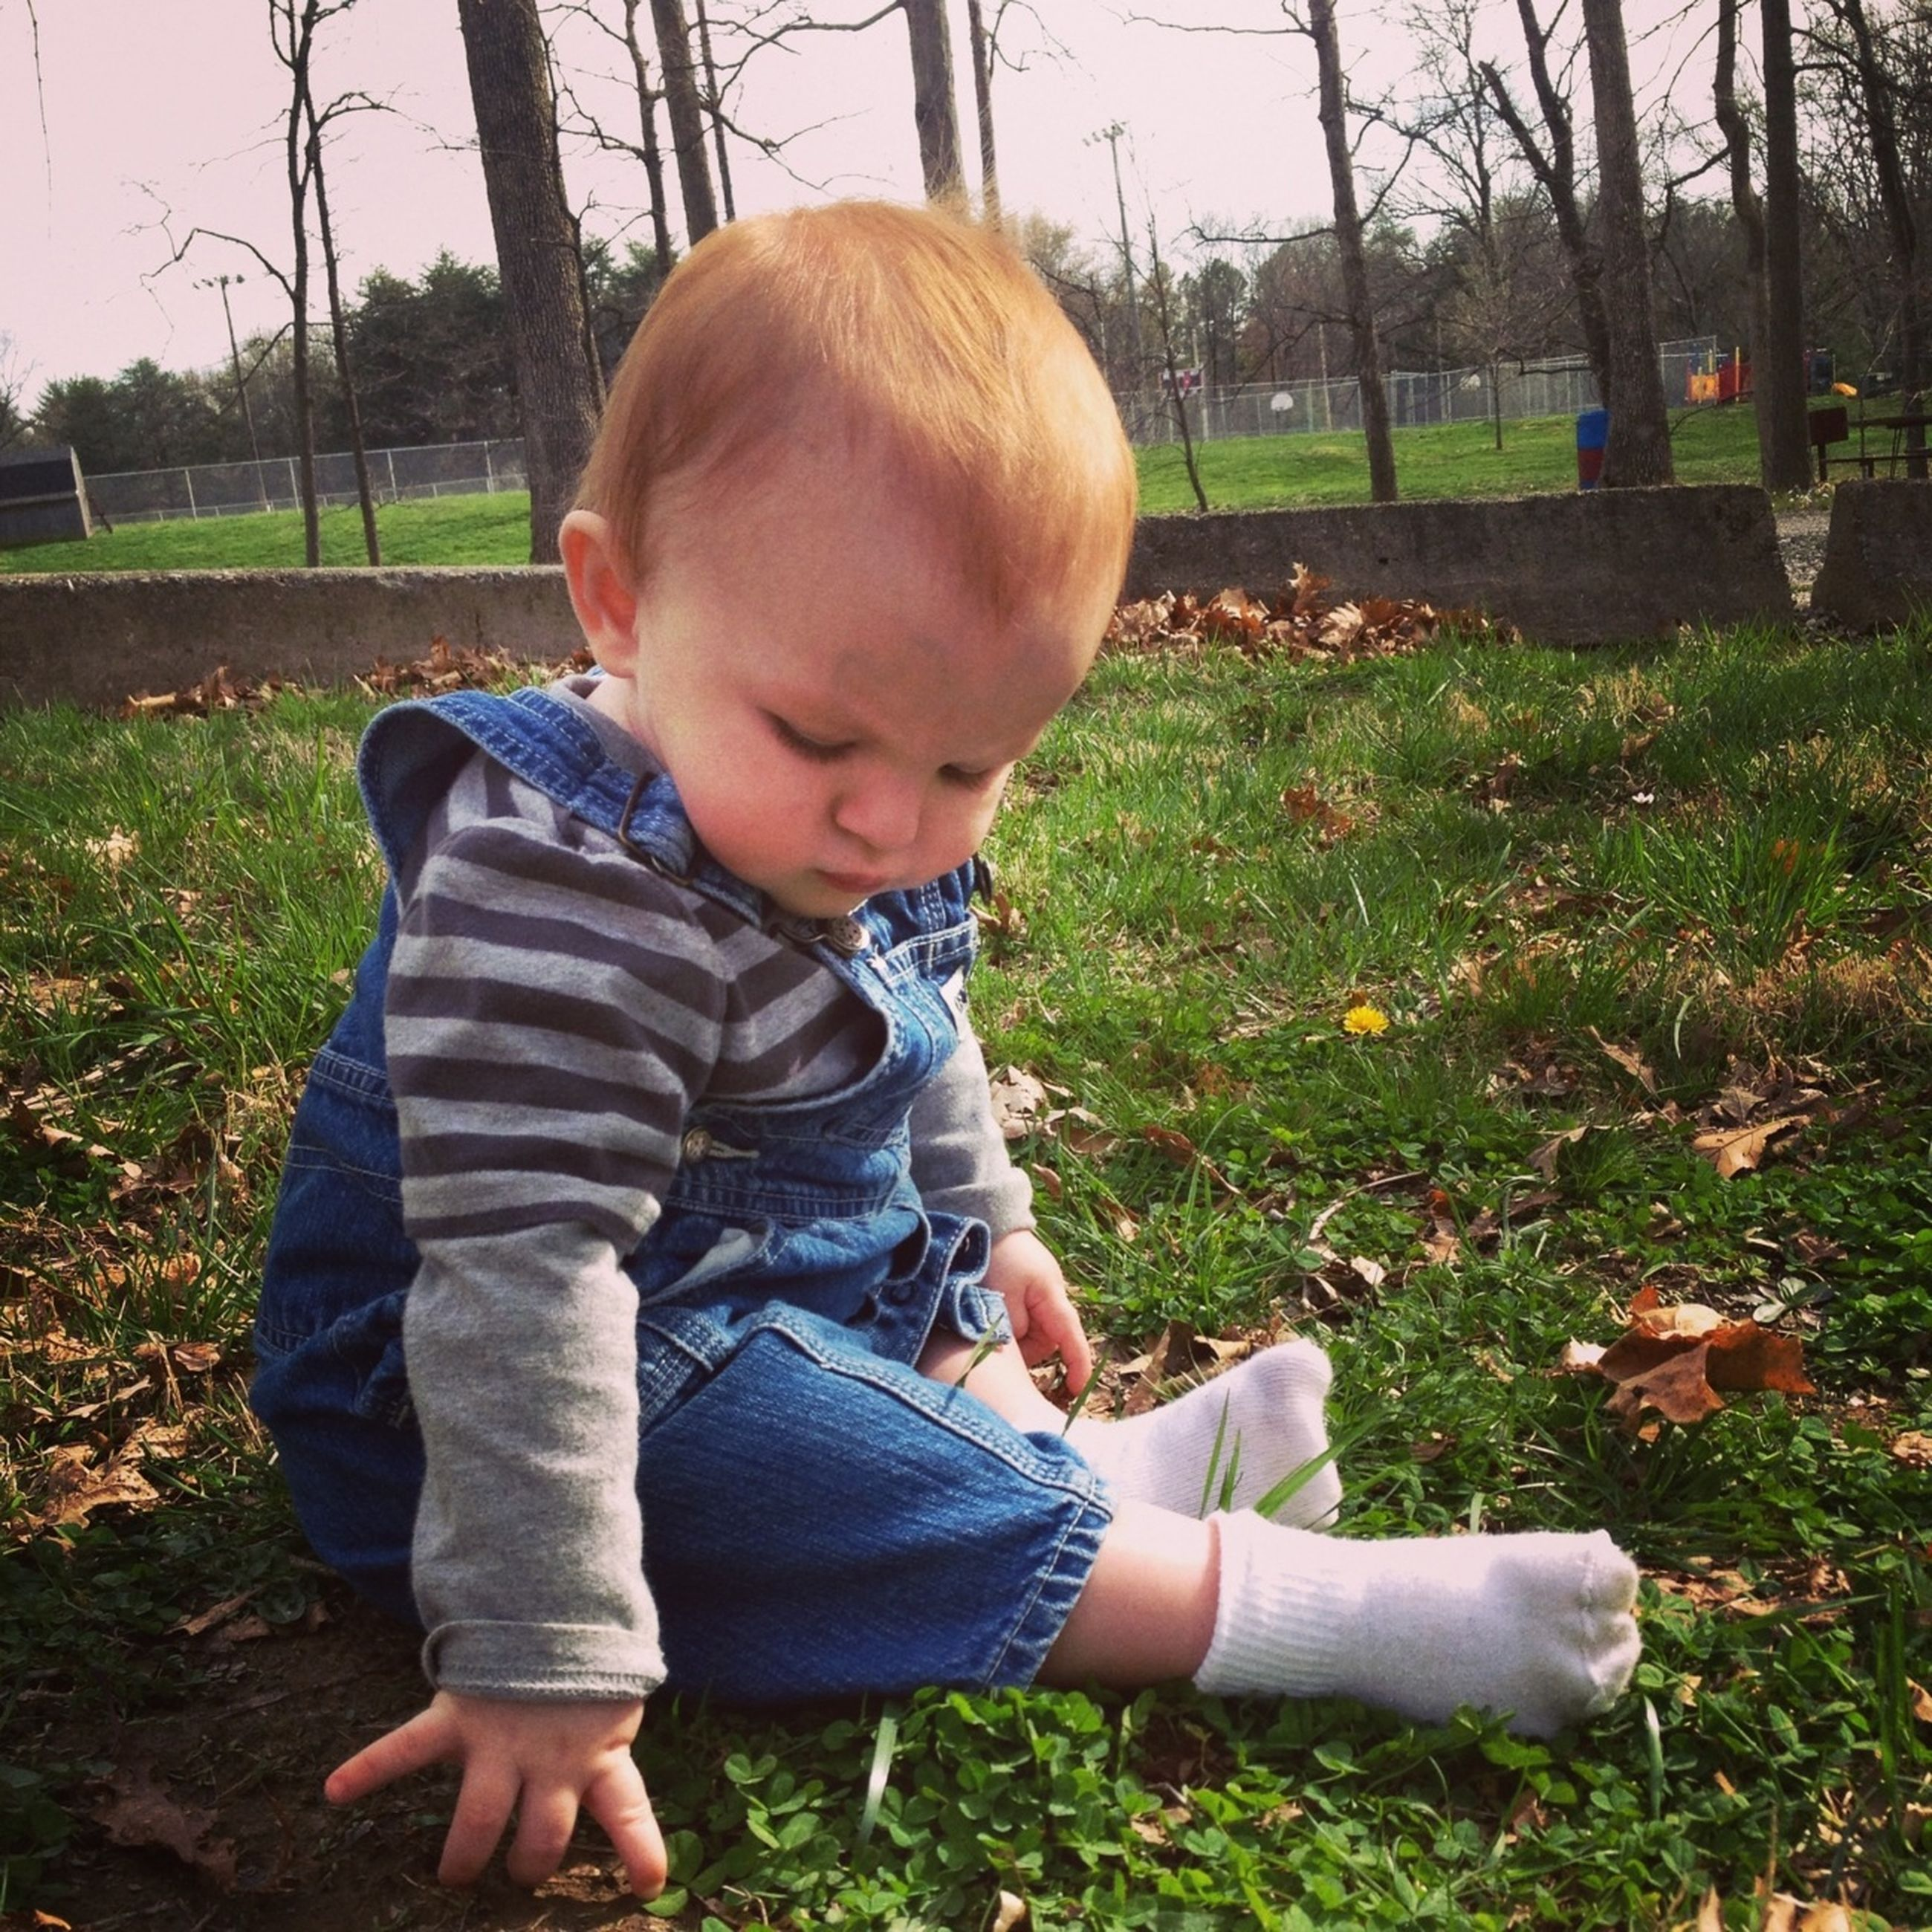 childhood, elementary age, person, innocence, boys, grass, cute, lifestyles, casual clothing, leisure activity, girls, field, full length, park - man made space, playful, toddler, baby, babyhood